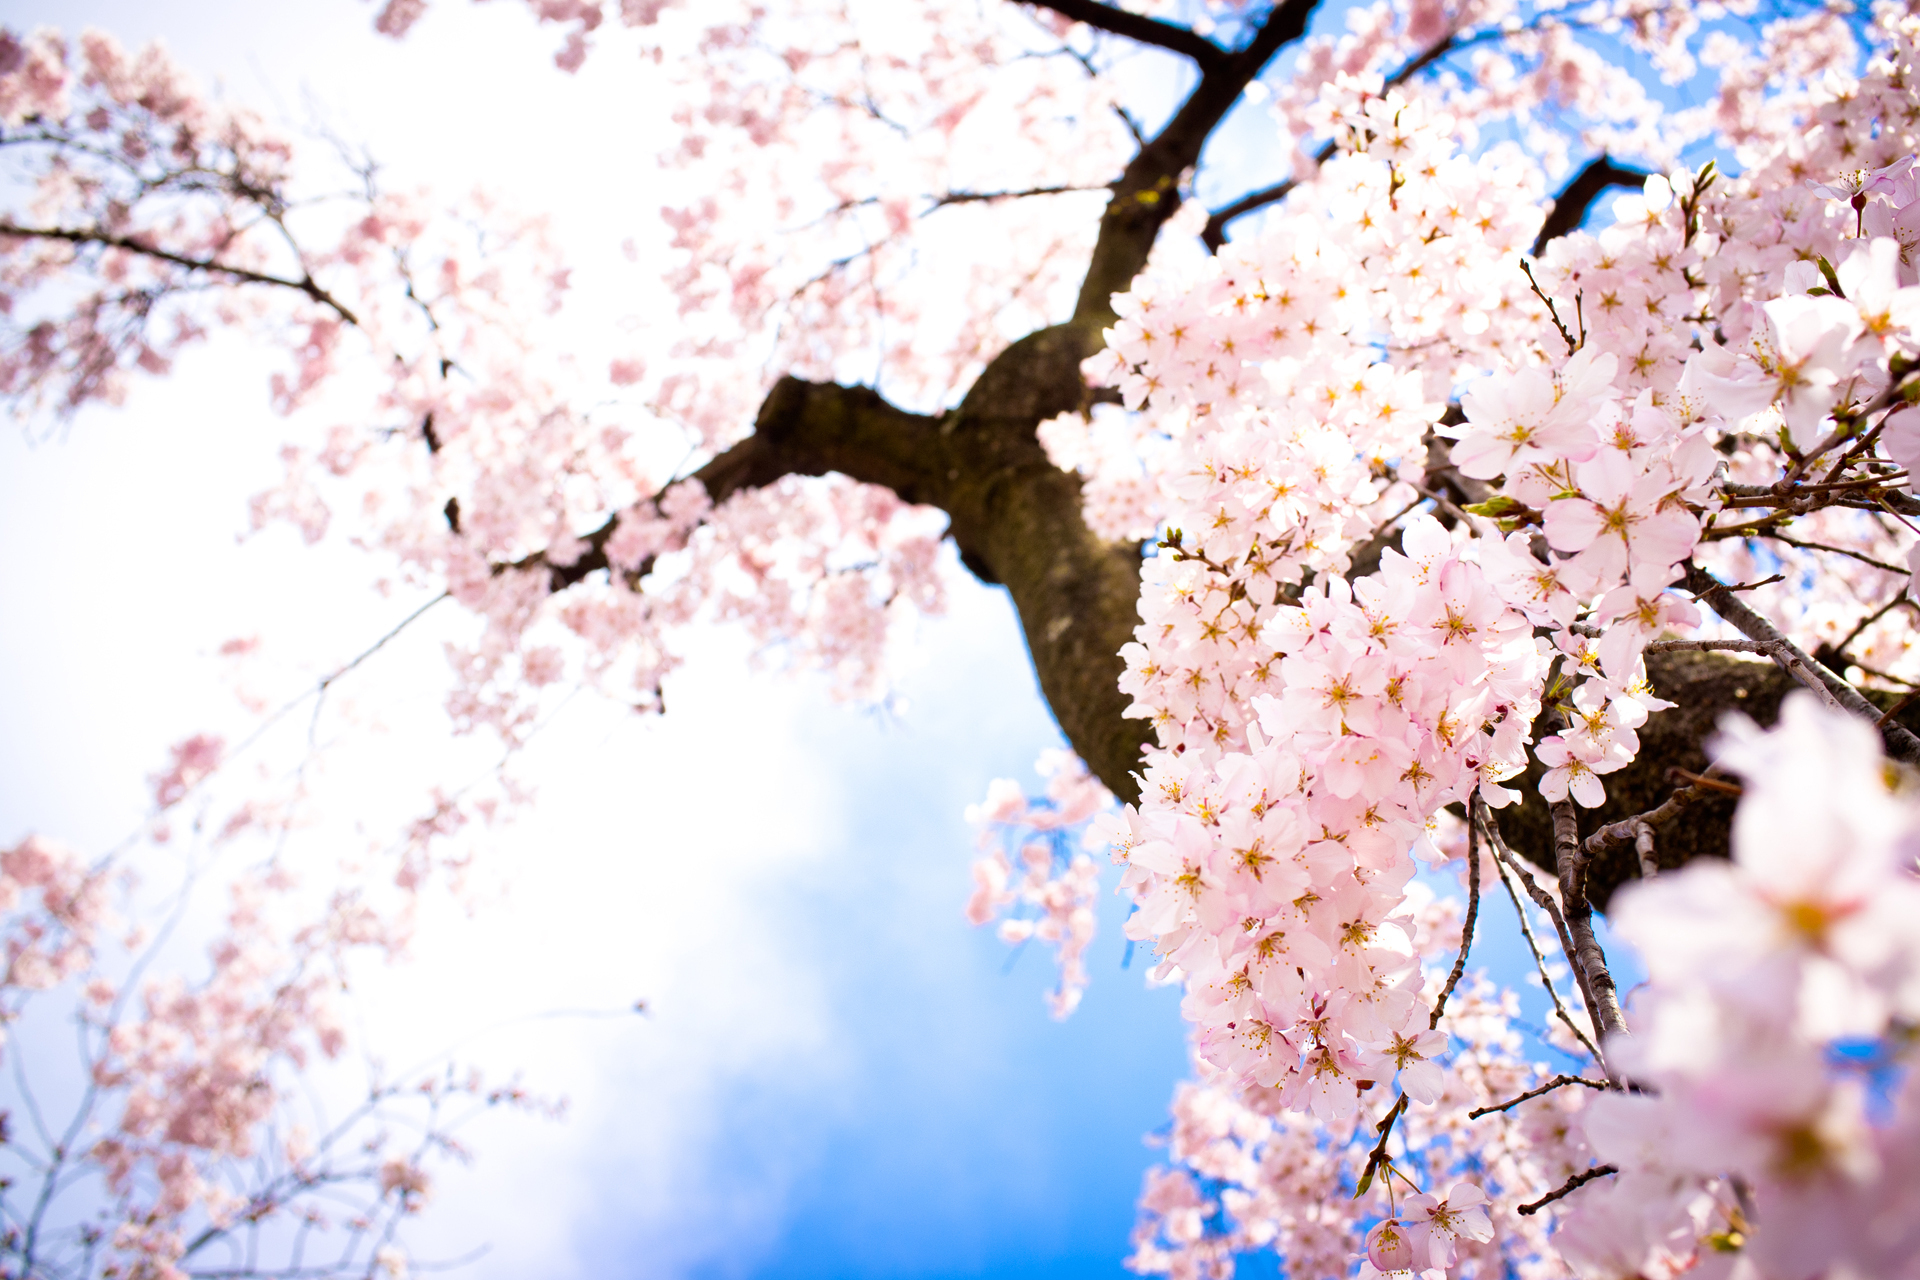 hd cherry blossom backgrounds - photo #15